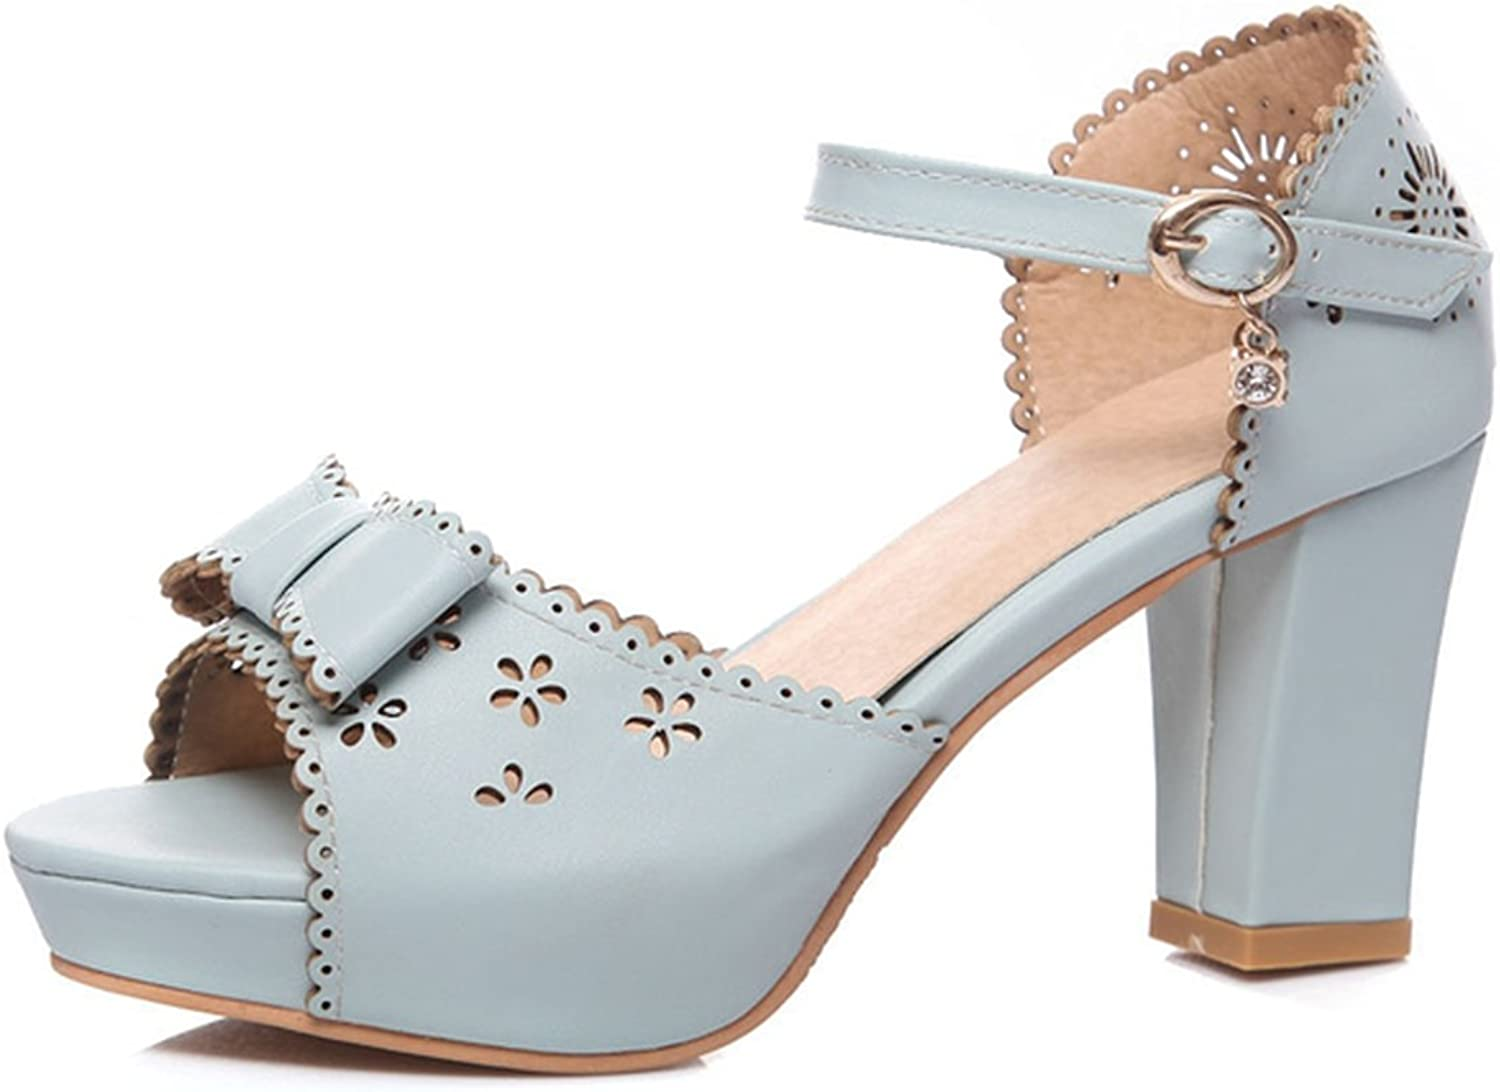 Collocation-Online Big Size 33-43 Sweet Bow Lace Edge Summer Sandals Shoes Woman Trendy High Heels Date